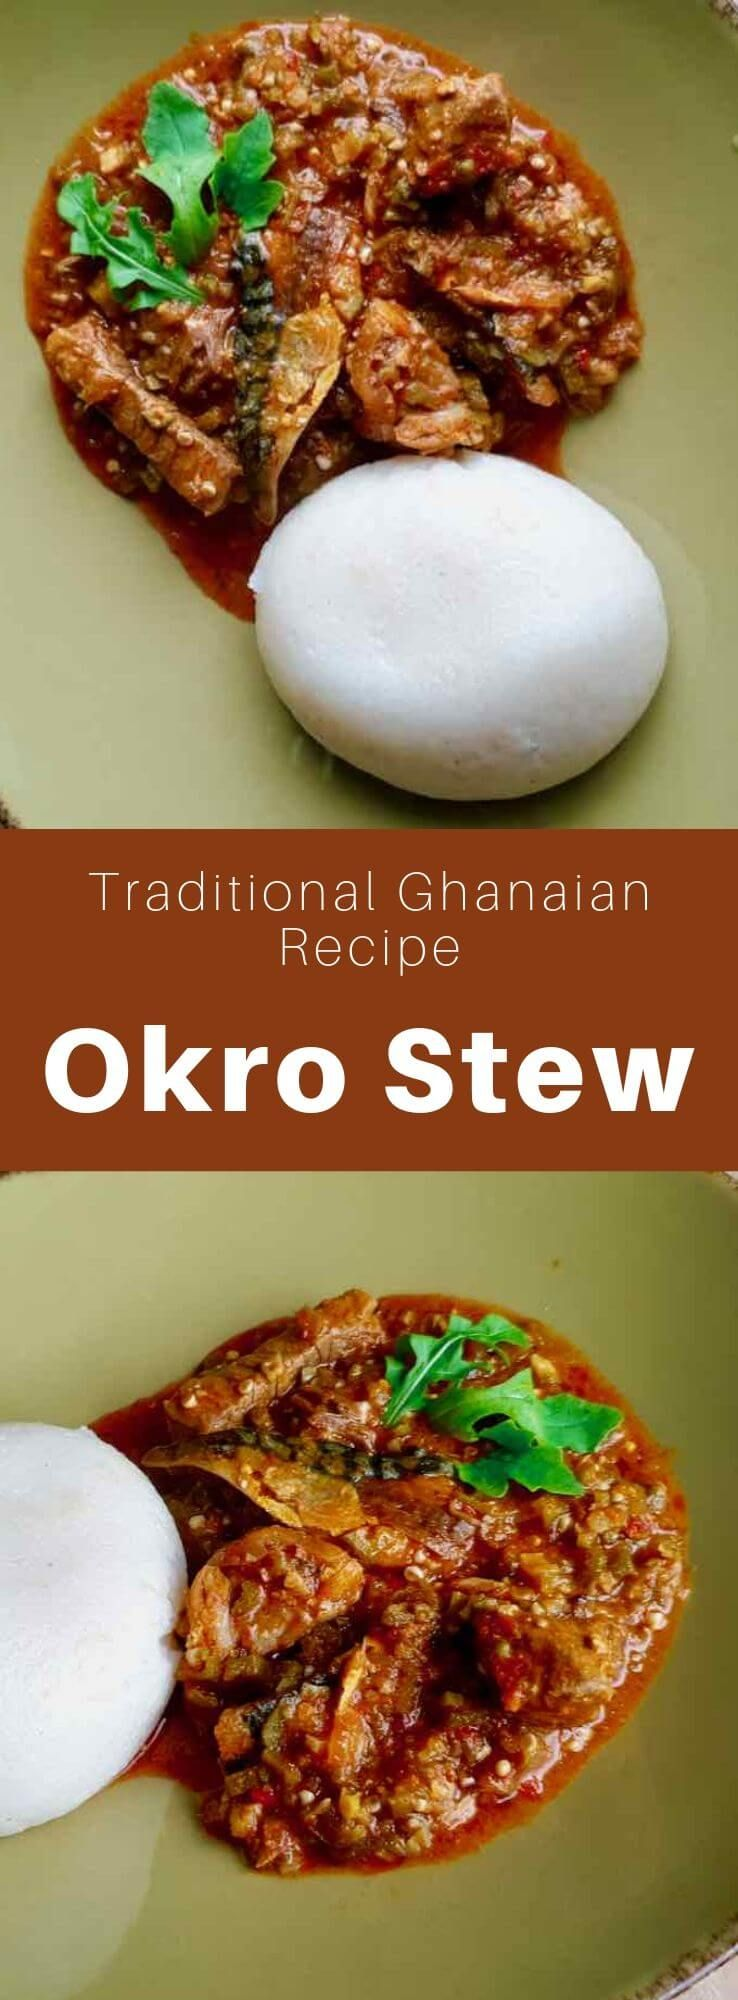 As One Of Ghana S National Dishes Okro Stew Is Prepared With Tomatoes Red Palm Oil Onions Tomatoes Spices And Finel African Cooking Okra Stew African Food